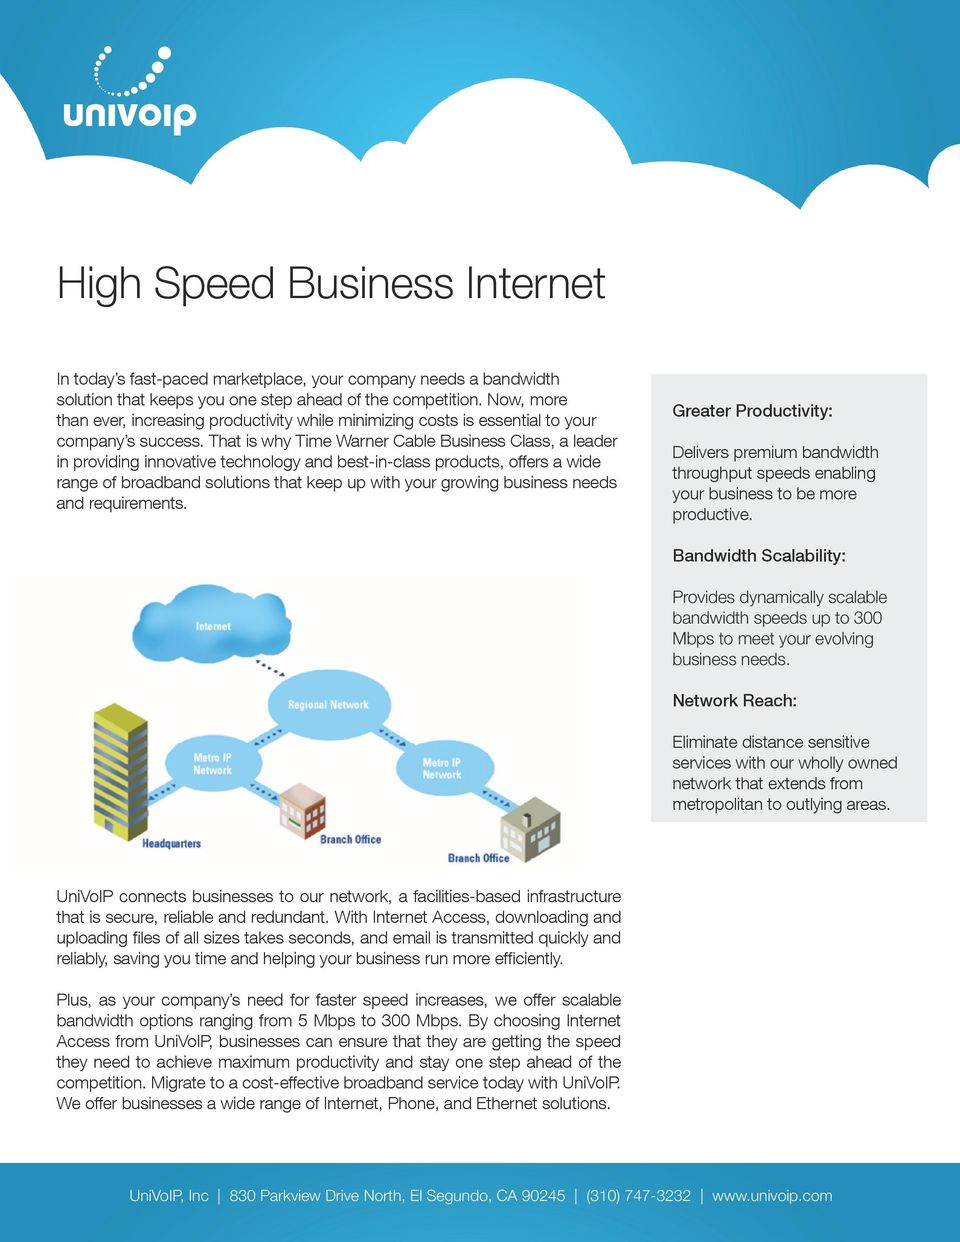 That is why Time Warner Cable Business Class, a leader in providing innovative technology and best-in-class products, offers a wide range of broadband solutions that keep up with your growing